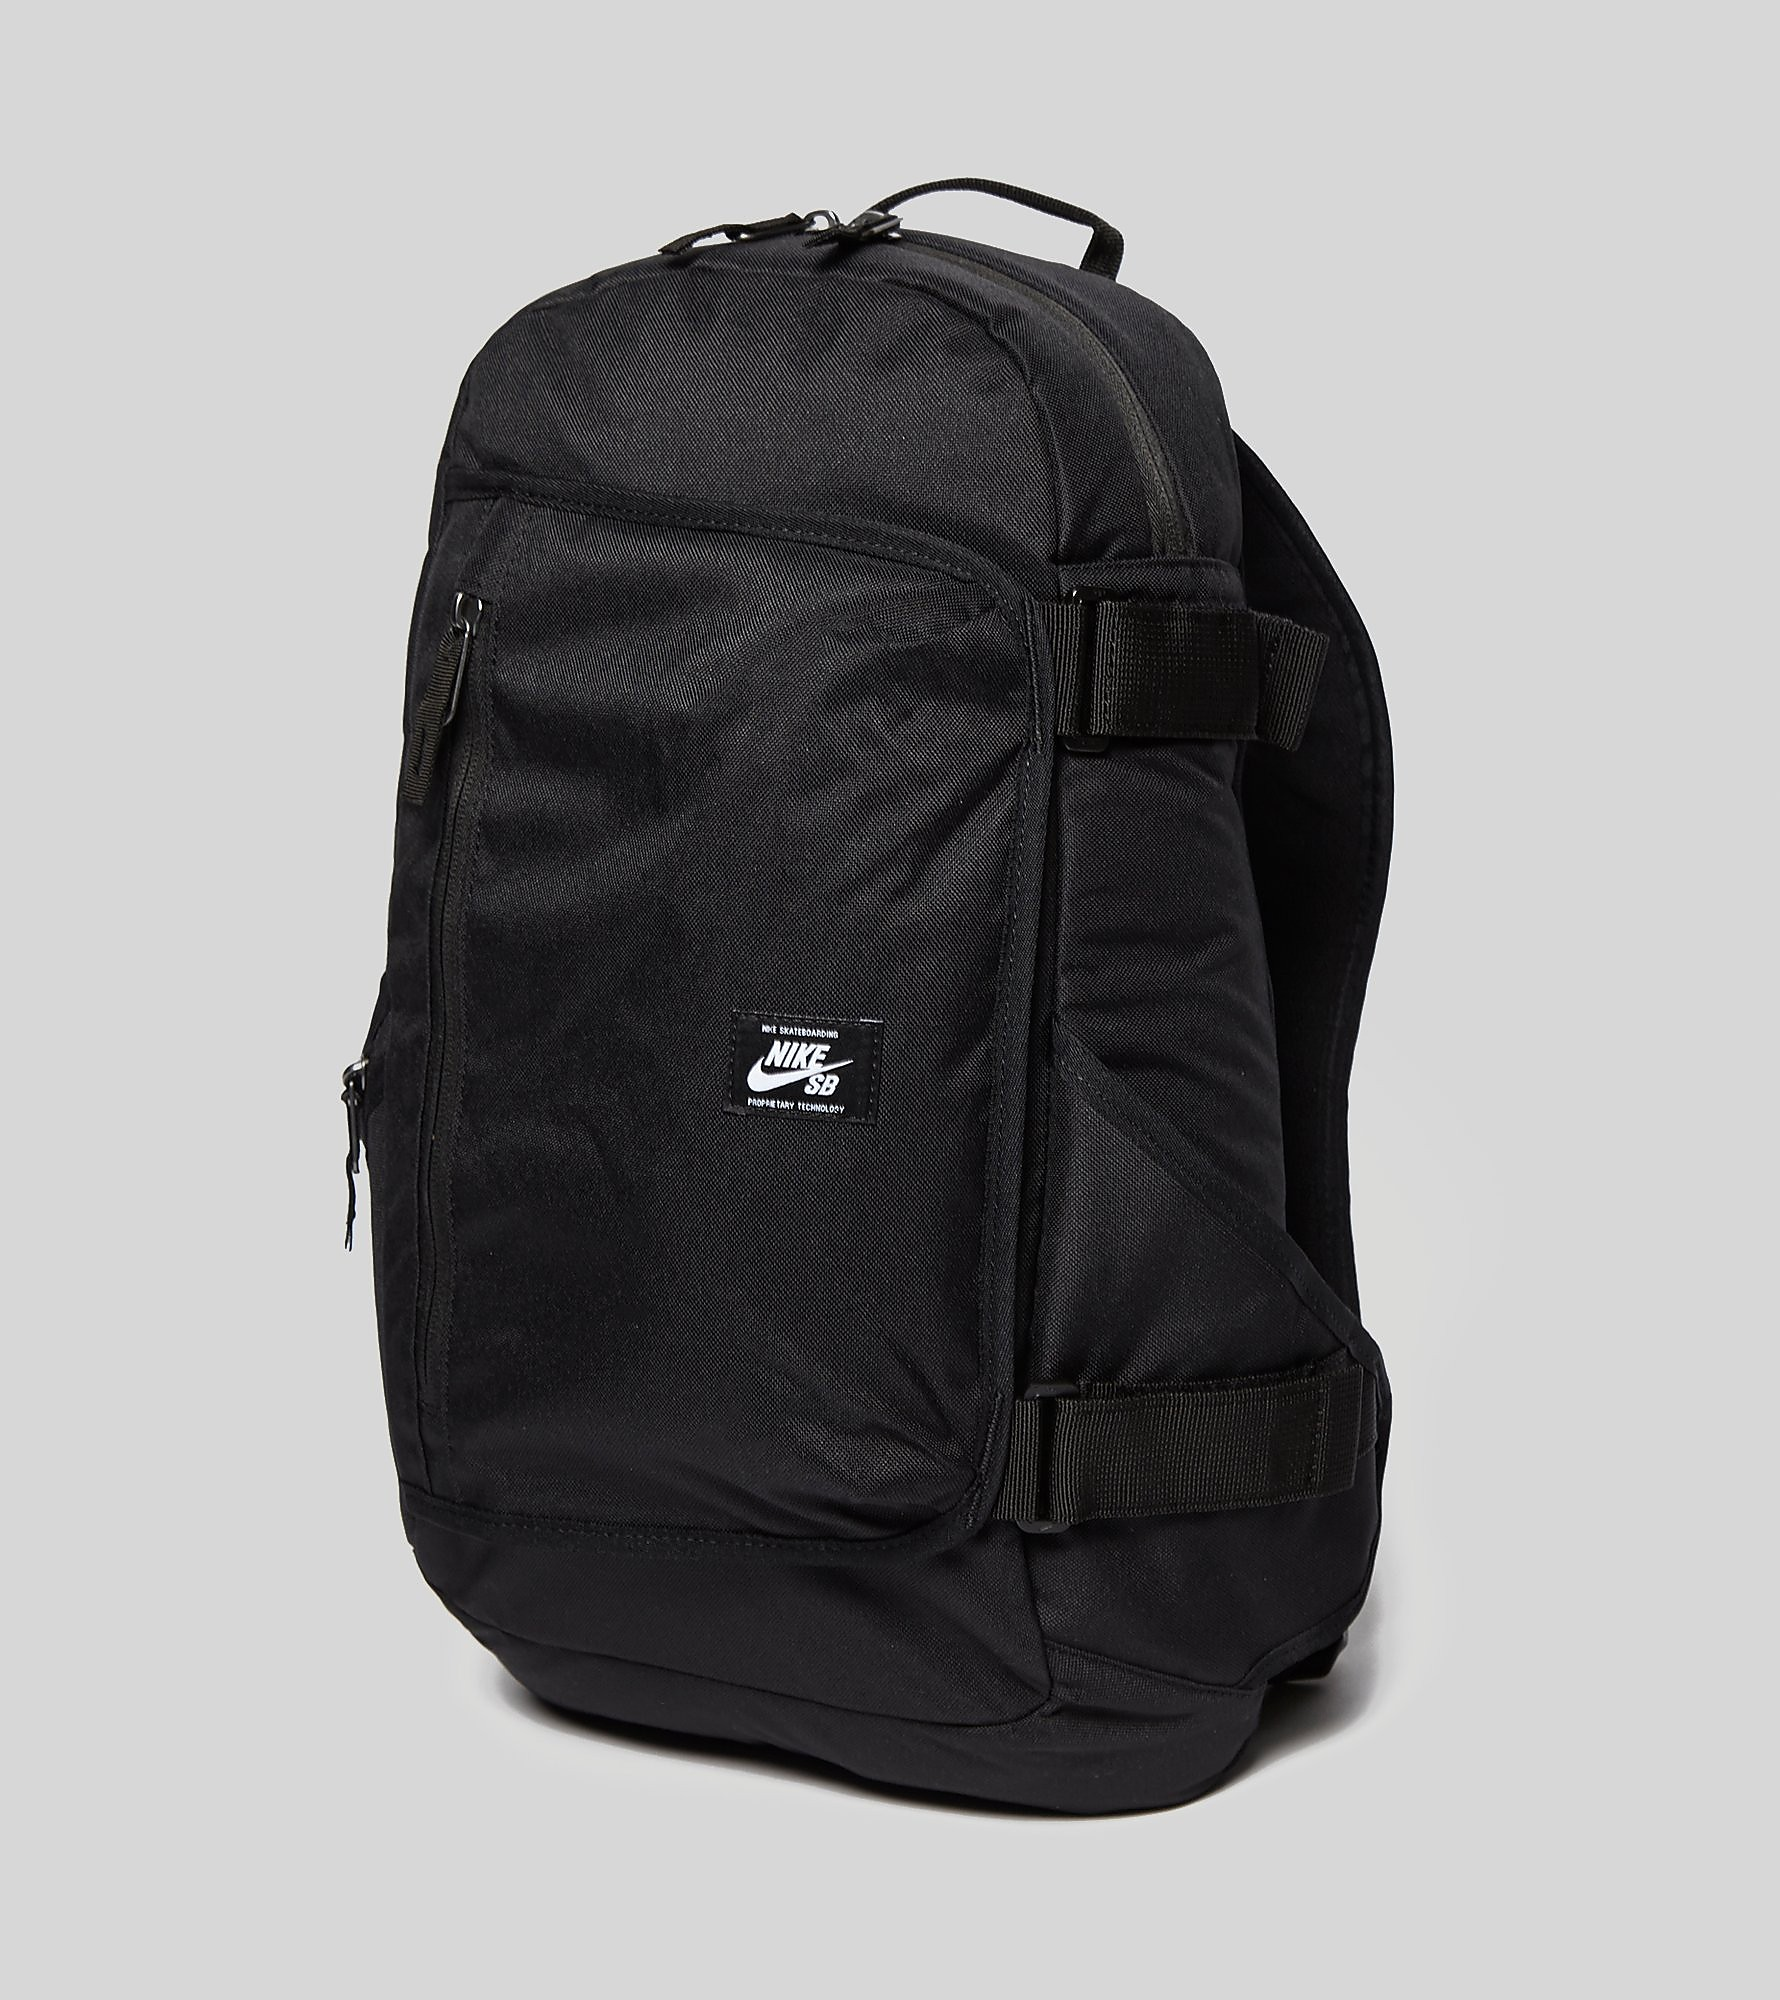 Nike SB Shelter Backpack